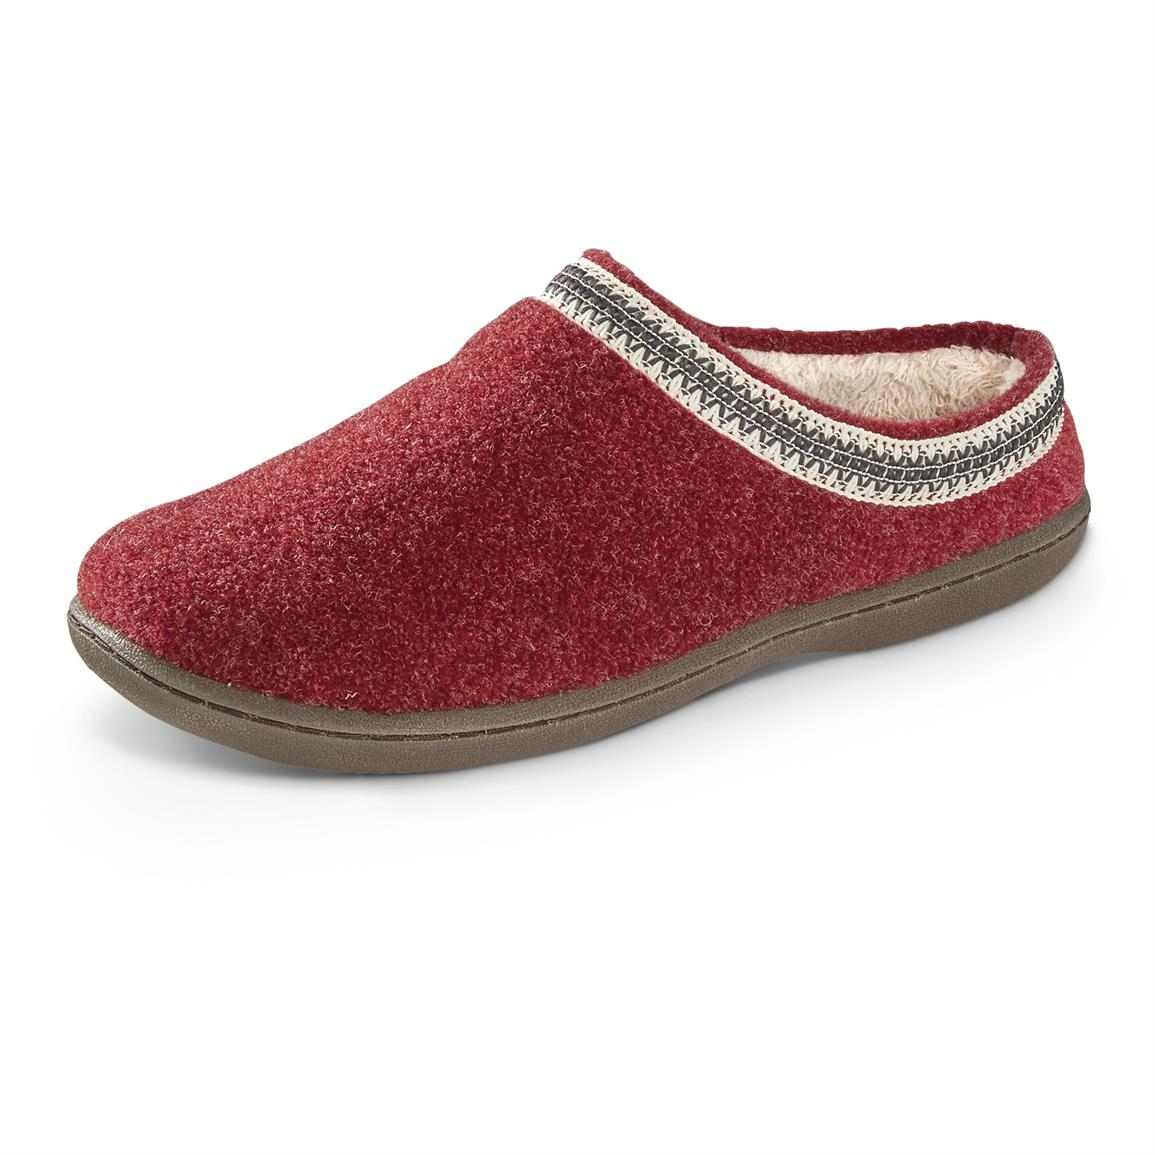 Guide Gear Women's Wool Clogs, Burgundy